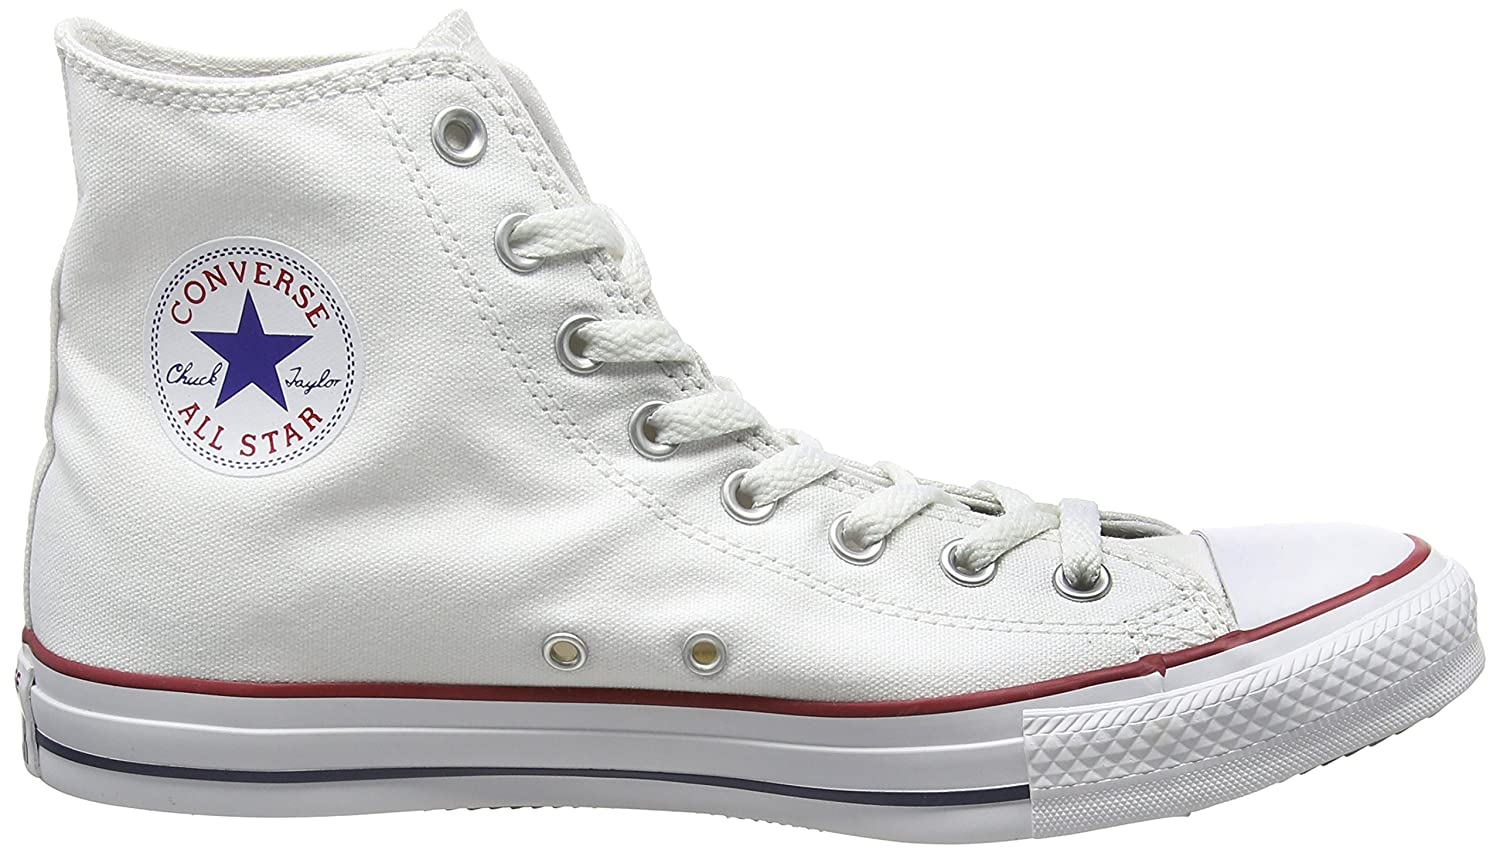 Converse Unisex Chuck Taylor All Star Hi Top Sneaker B01MD0CO5Y 8.5 B(M) US Women / 6.5 D(M) US Men|Optical White